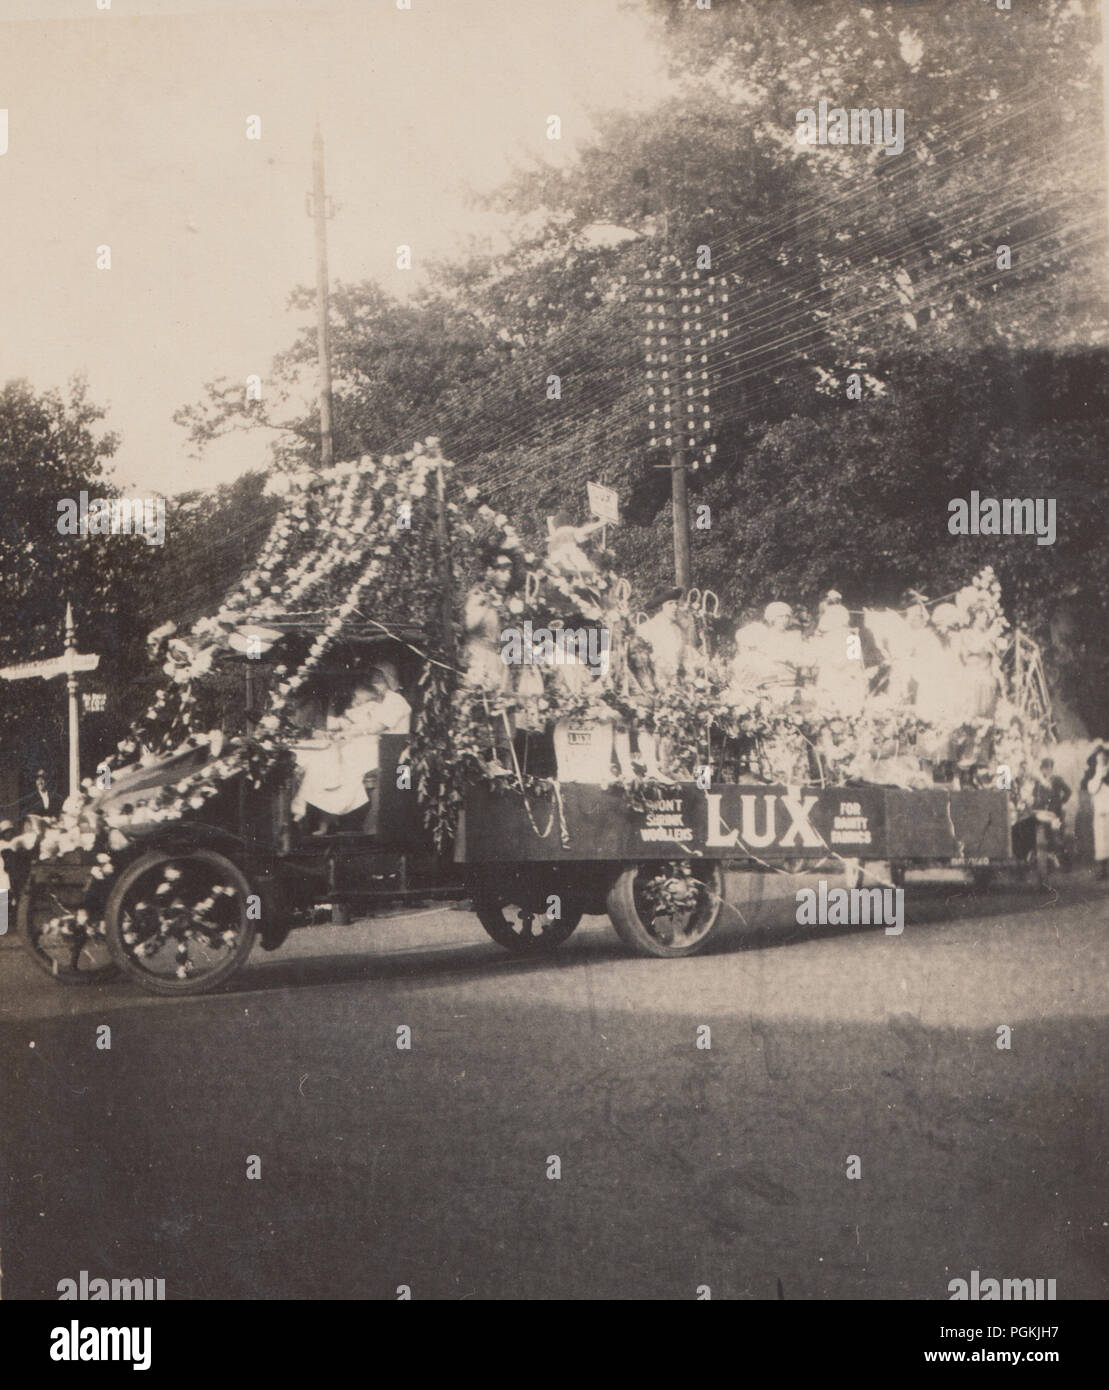 Vintage Photograph of a Carnival Float With a Lux Advert on The Side of The Lorry. Signpost For Greensford Next To The Lorry. - Stock Image